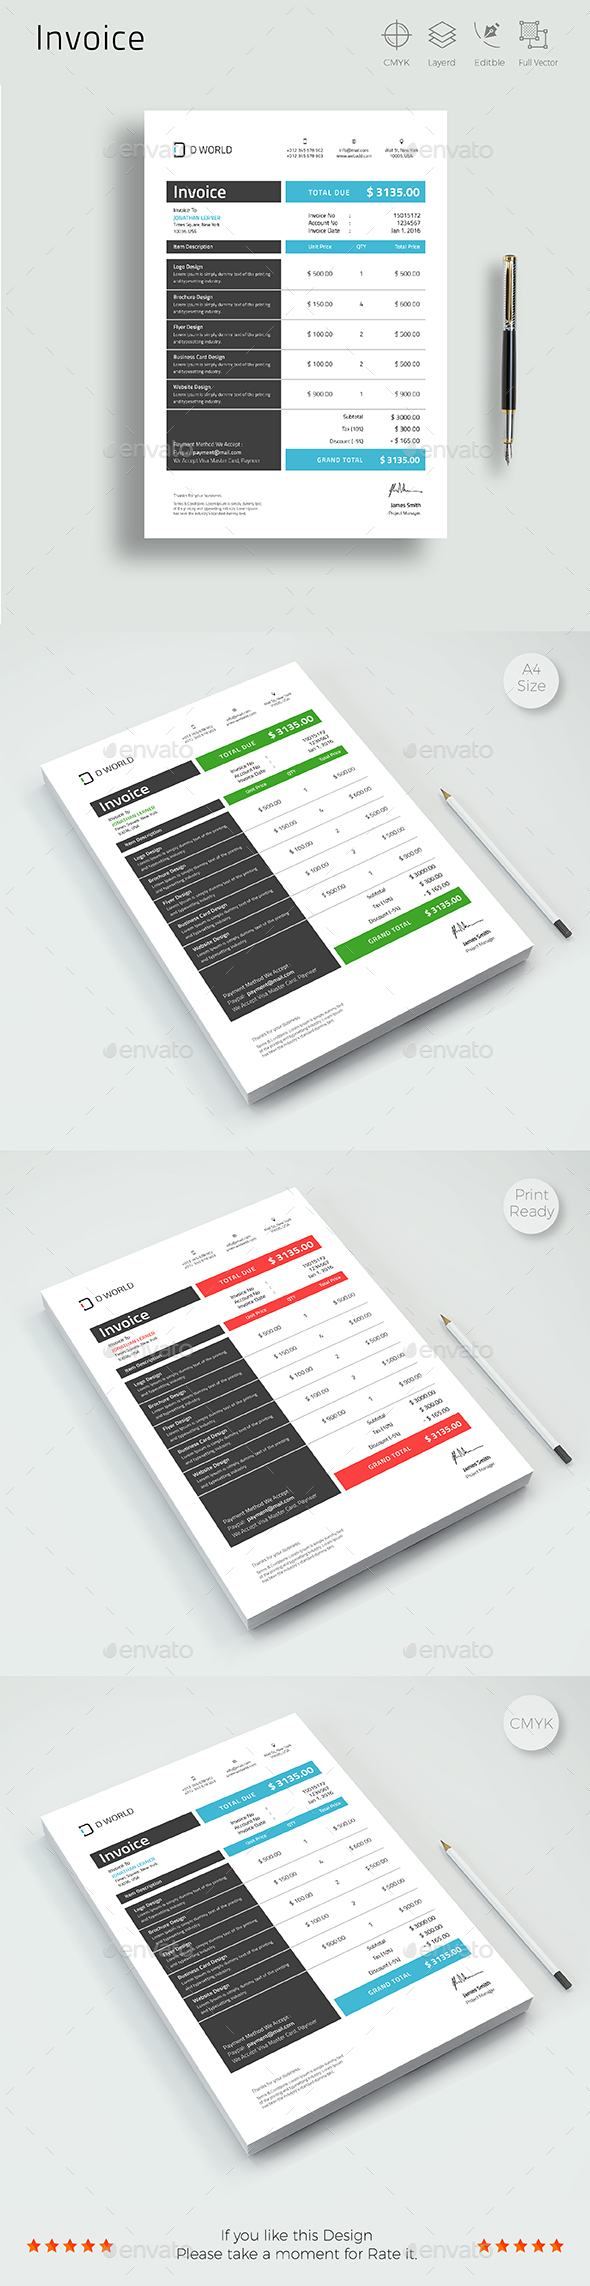 How To Do A Invoice Invoice  Pinterest  Ai Illustrator Stationery Templates And Template